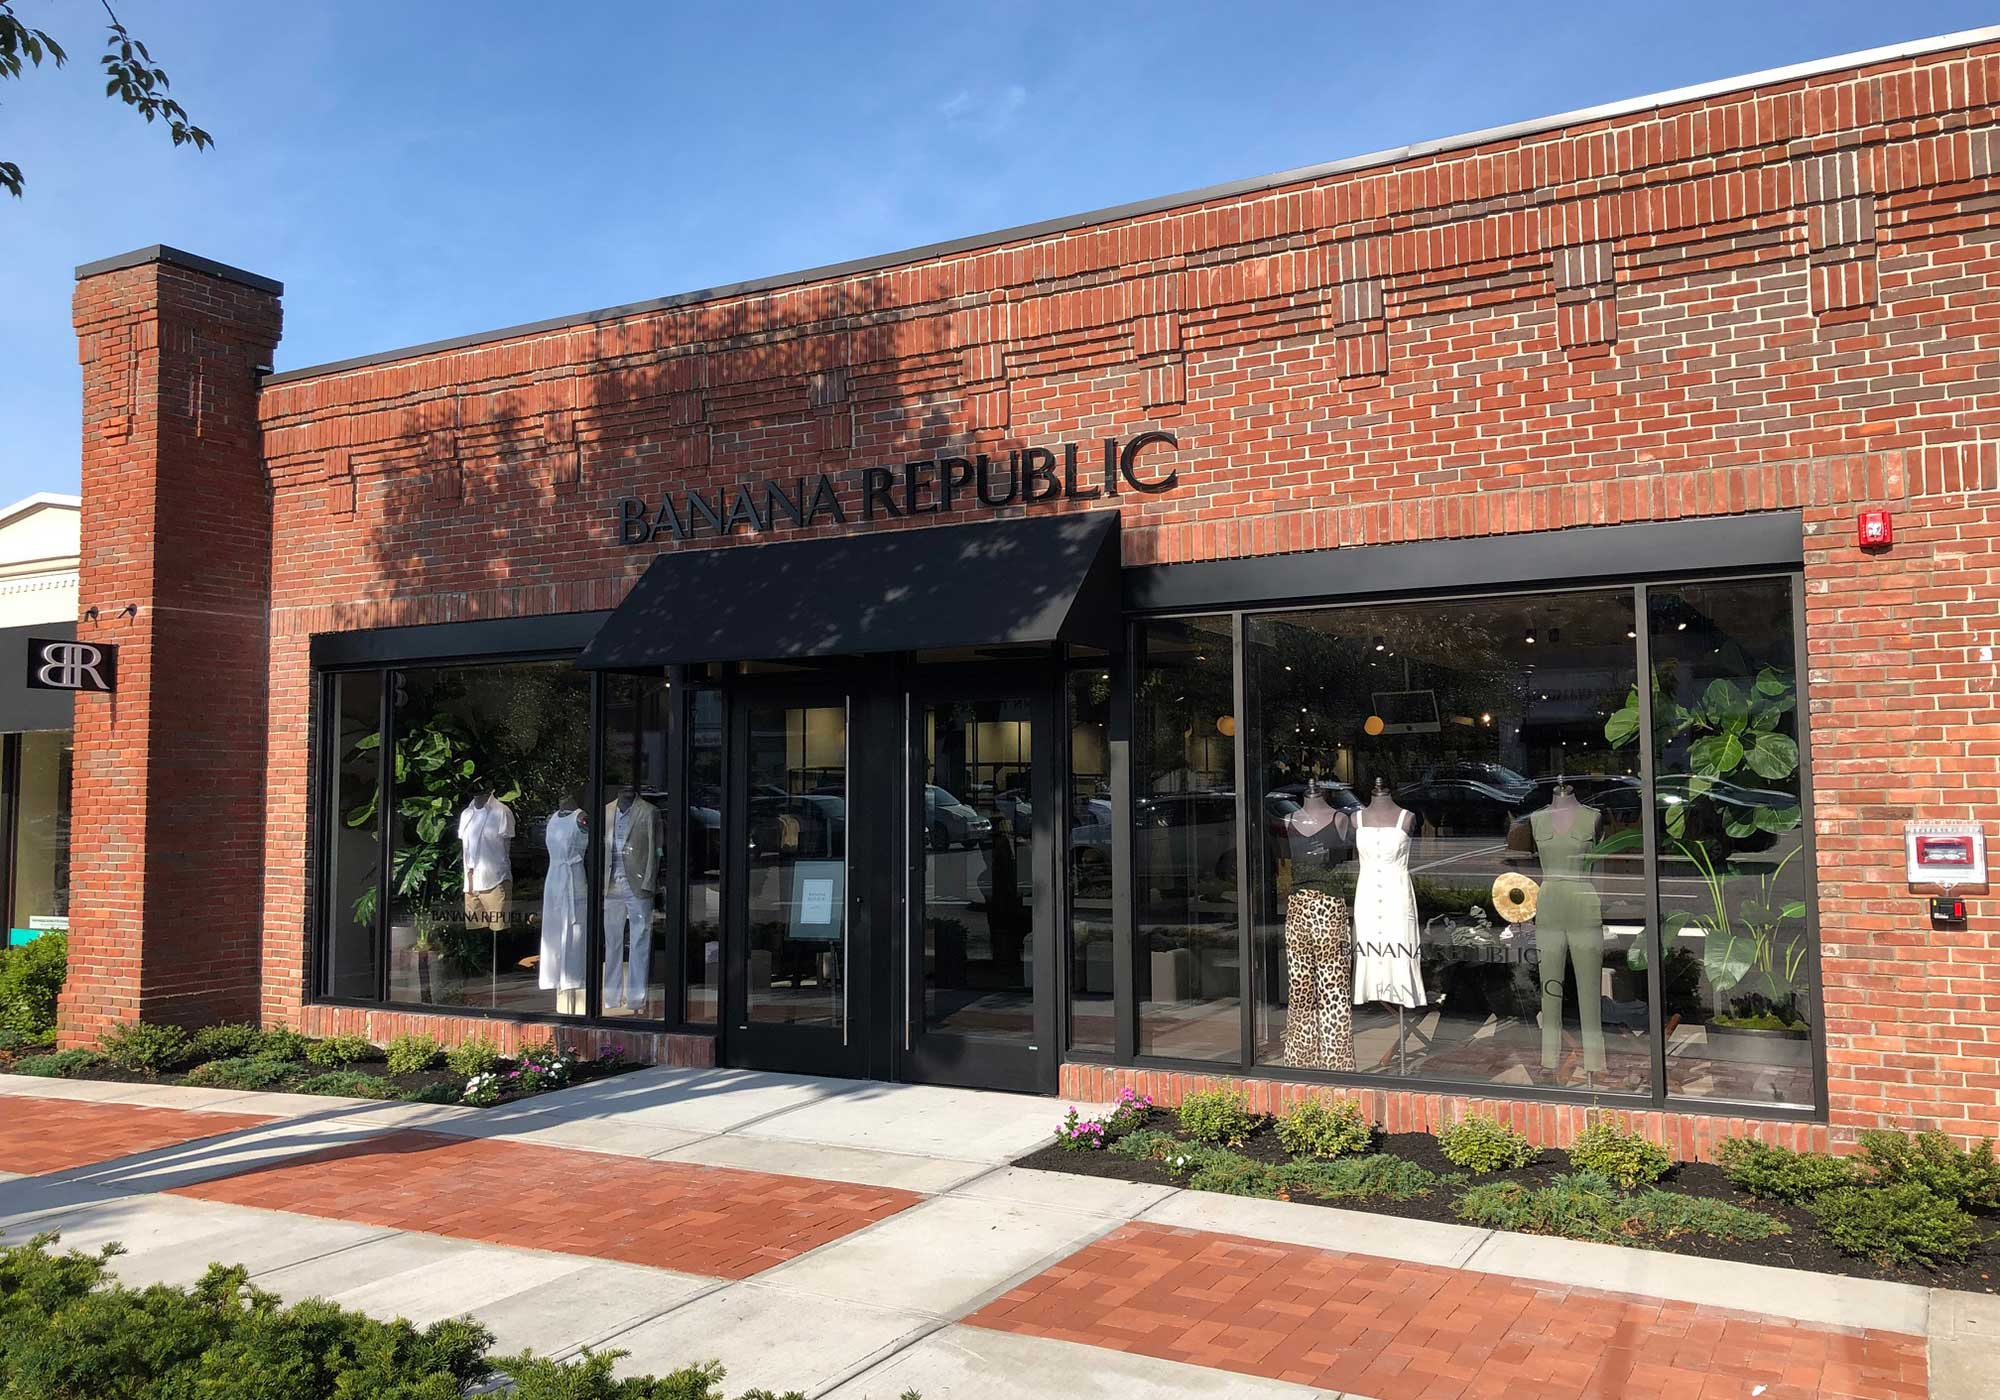 Brick store front with window displays